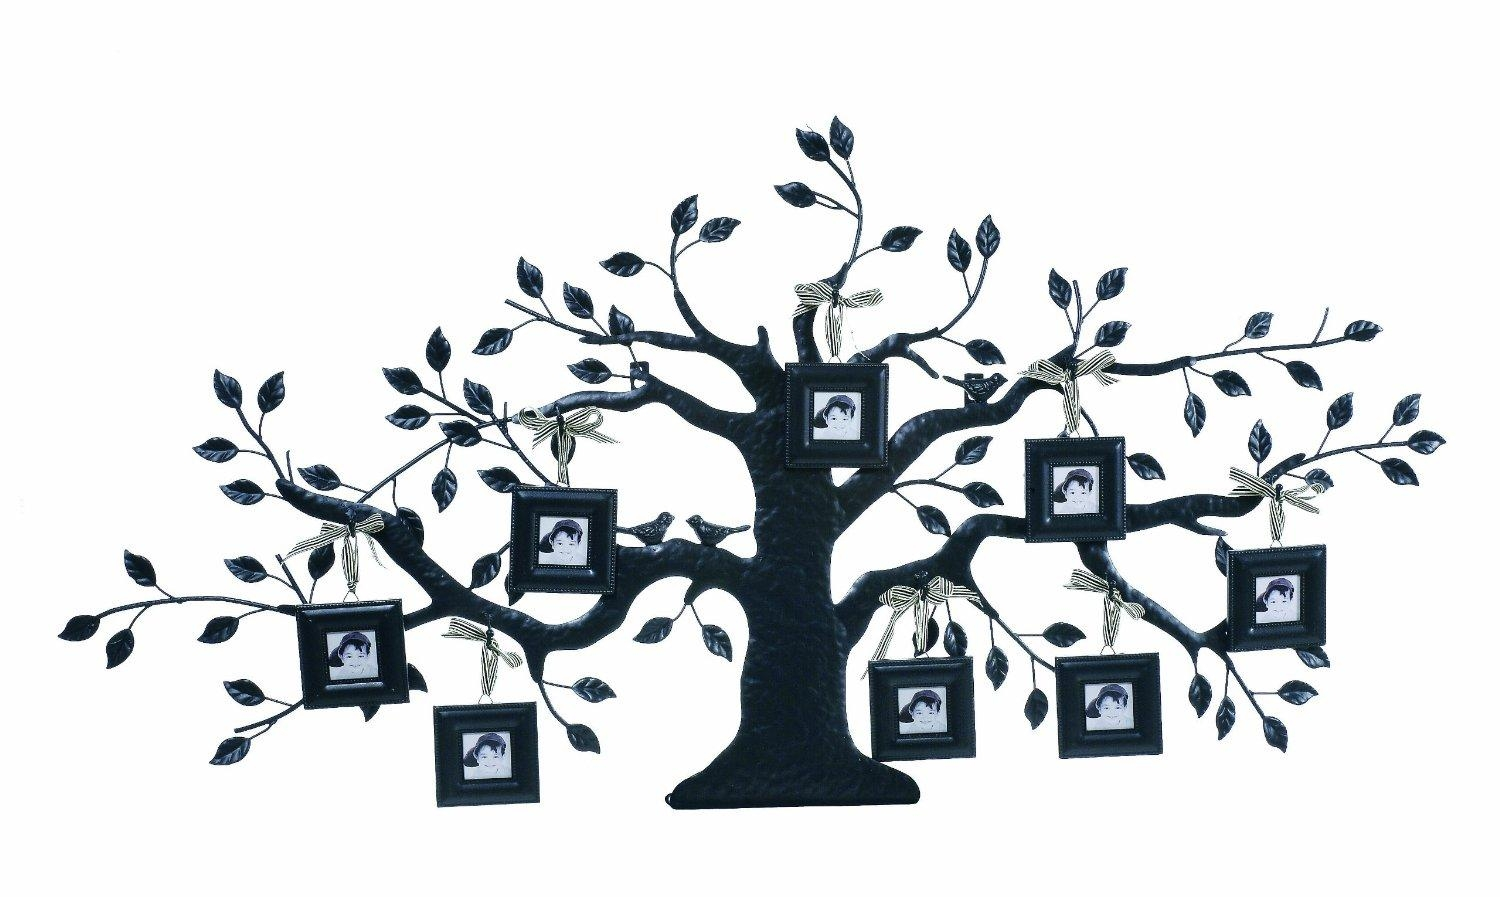 Metal Tree Wall Art Gallery: 20 Collection Of Iron Tree Wall Art